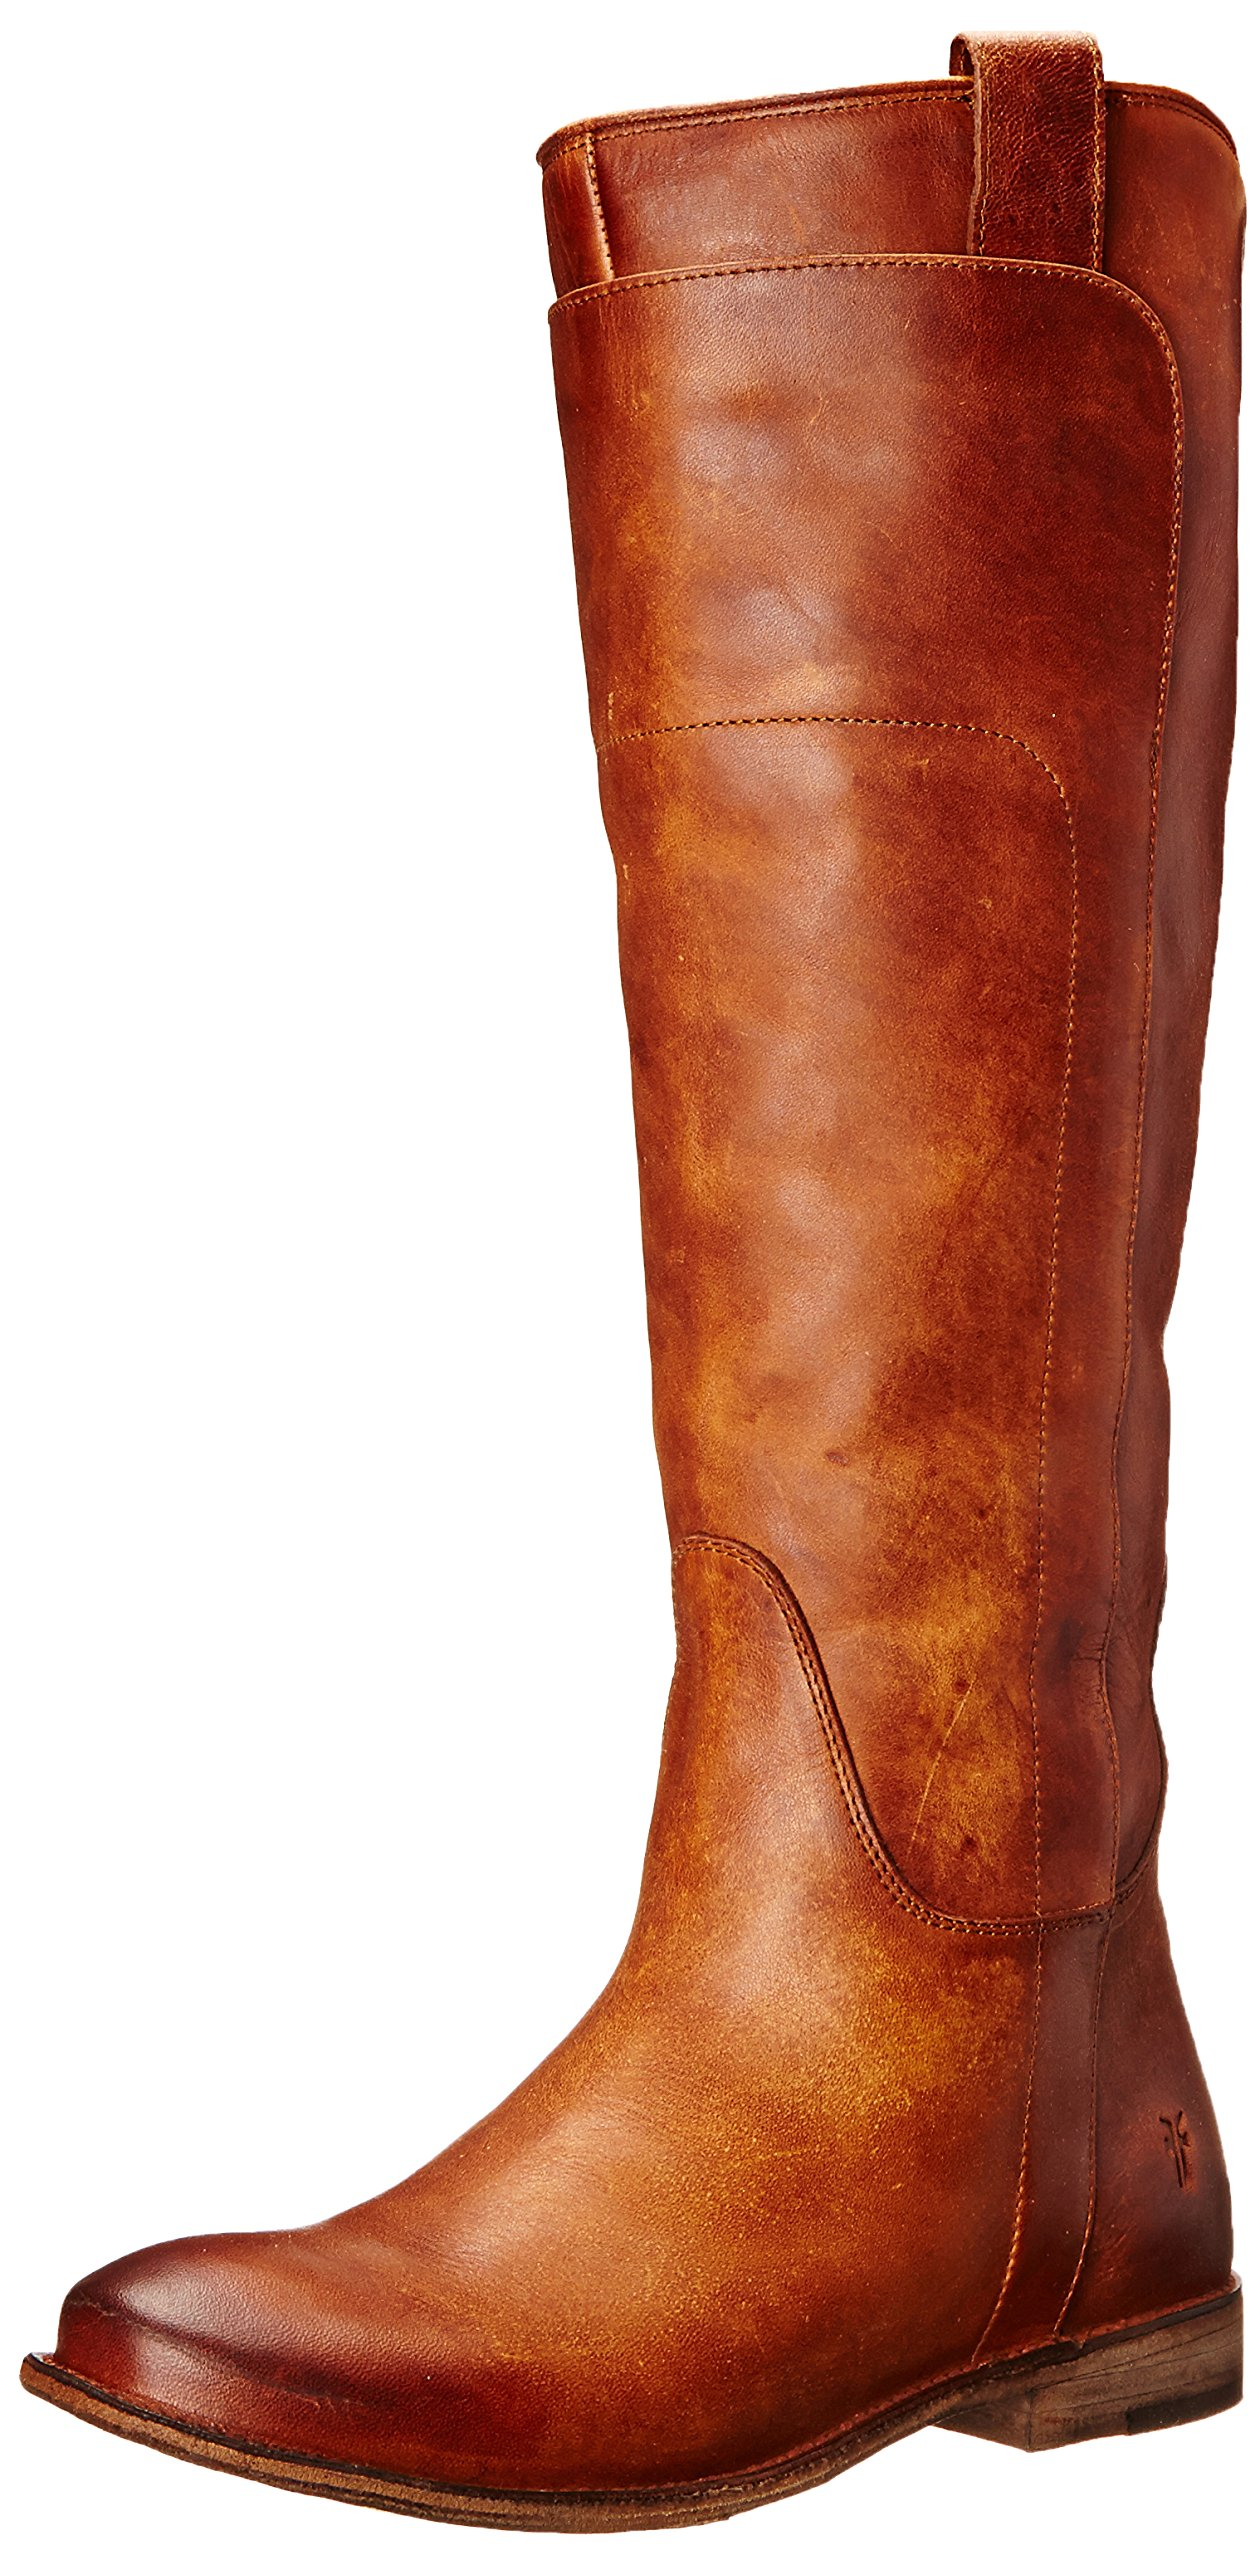 FRYE Women's Paige Tall-Apu Riding Boot, Cognac, 7 M US